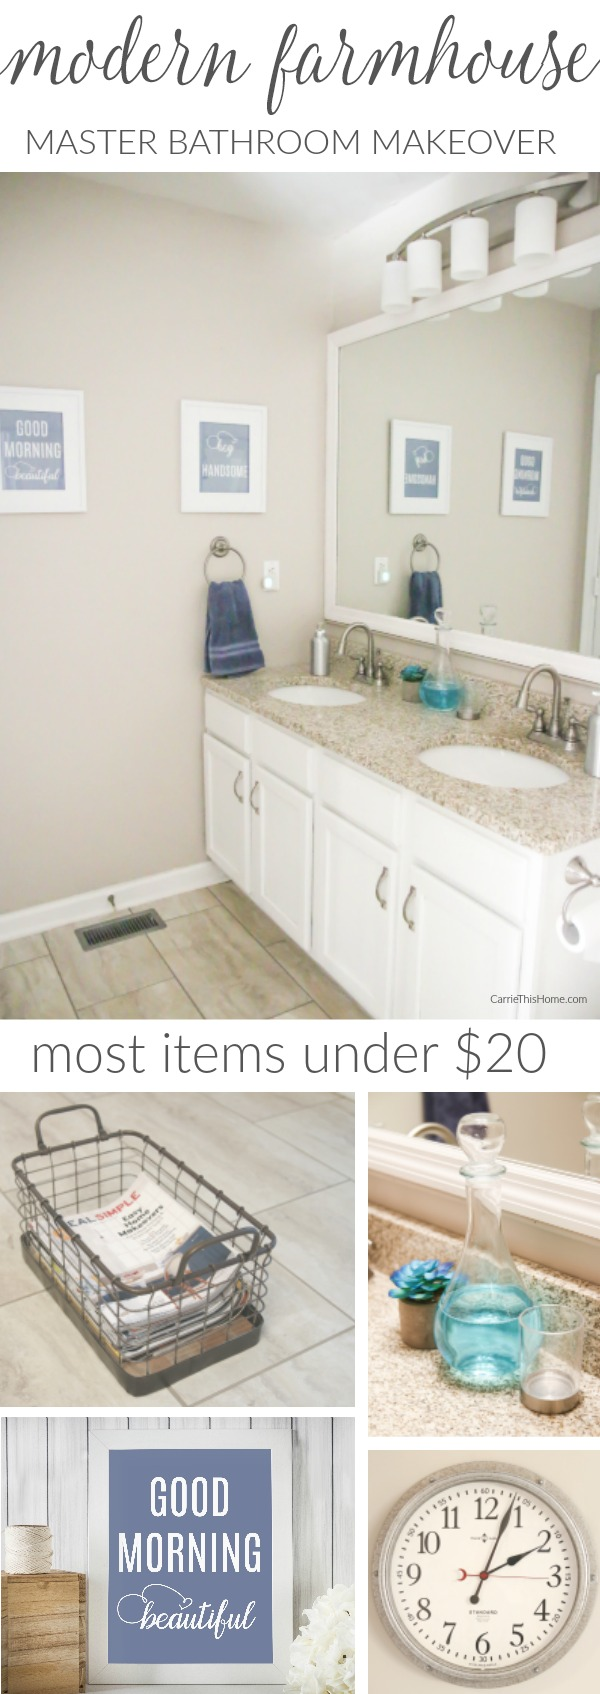 Get the modern farmhouse look on a budget! from CarrieThisHome.com